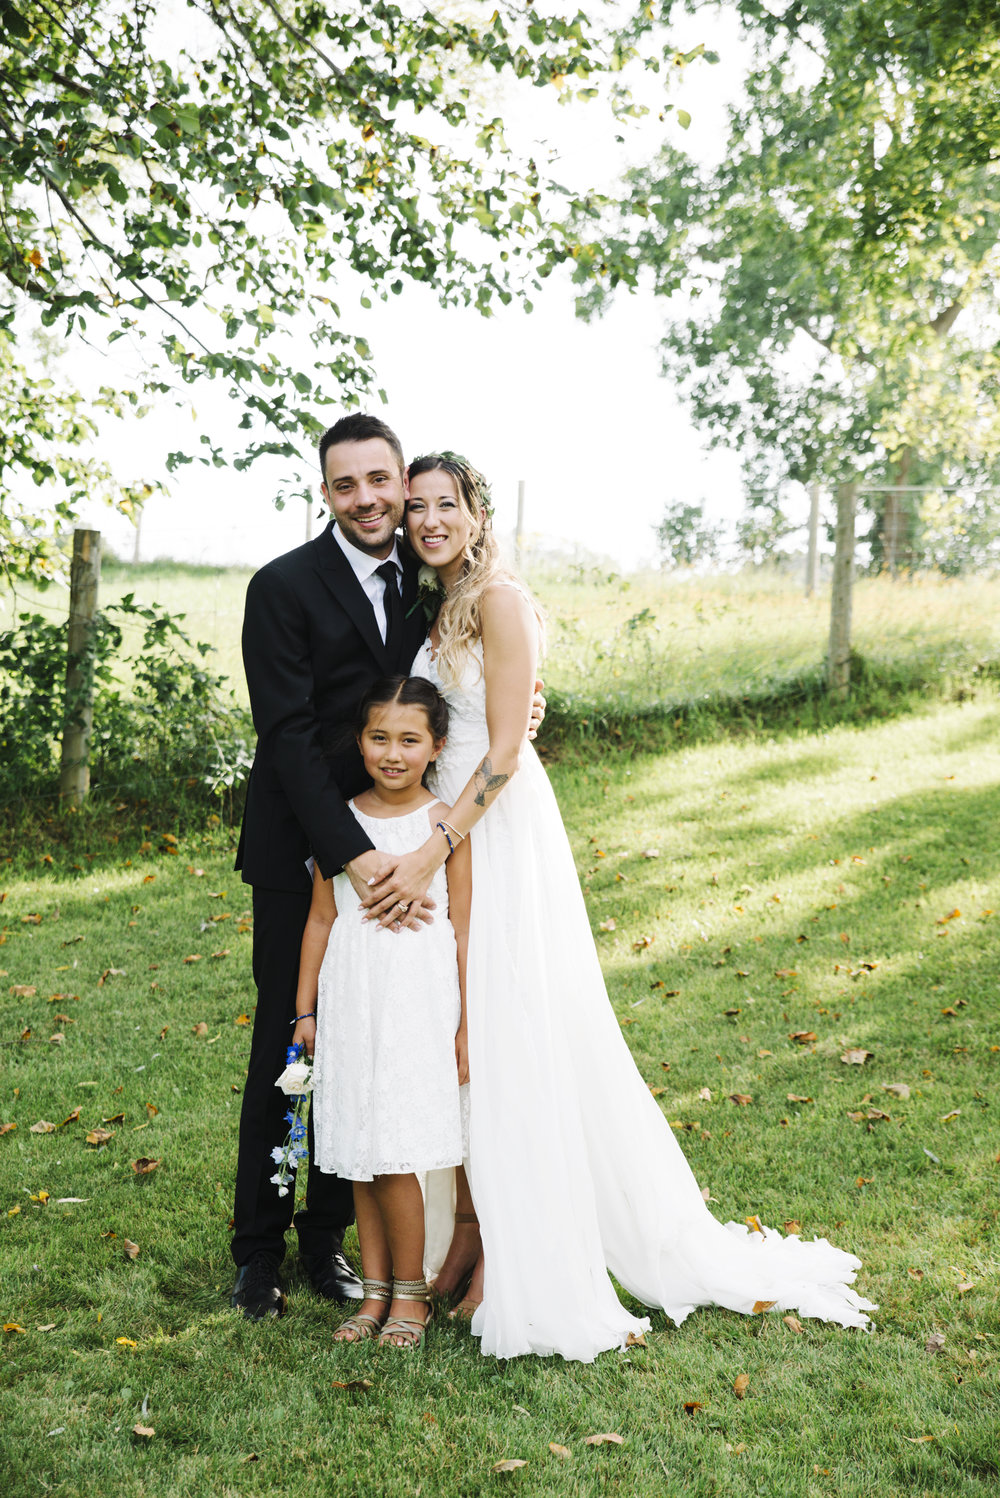 RosewoodWeddingPhotos-LondonWedding-KylieAlex-1435-SelfishThings-BohoFarmWedding-Family